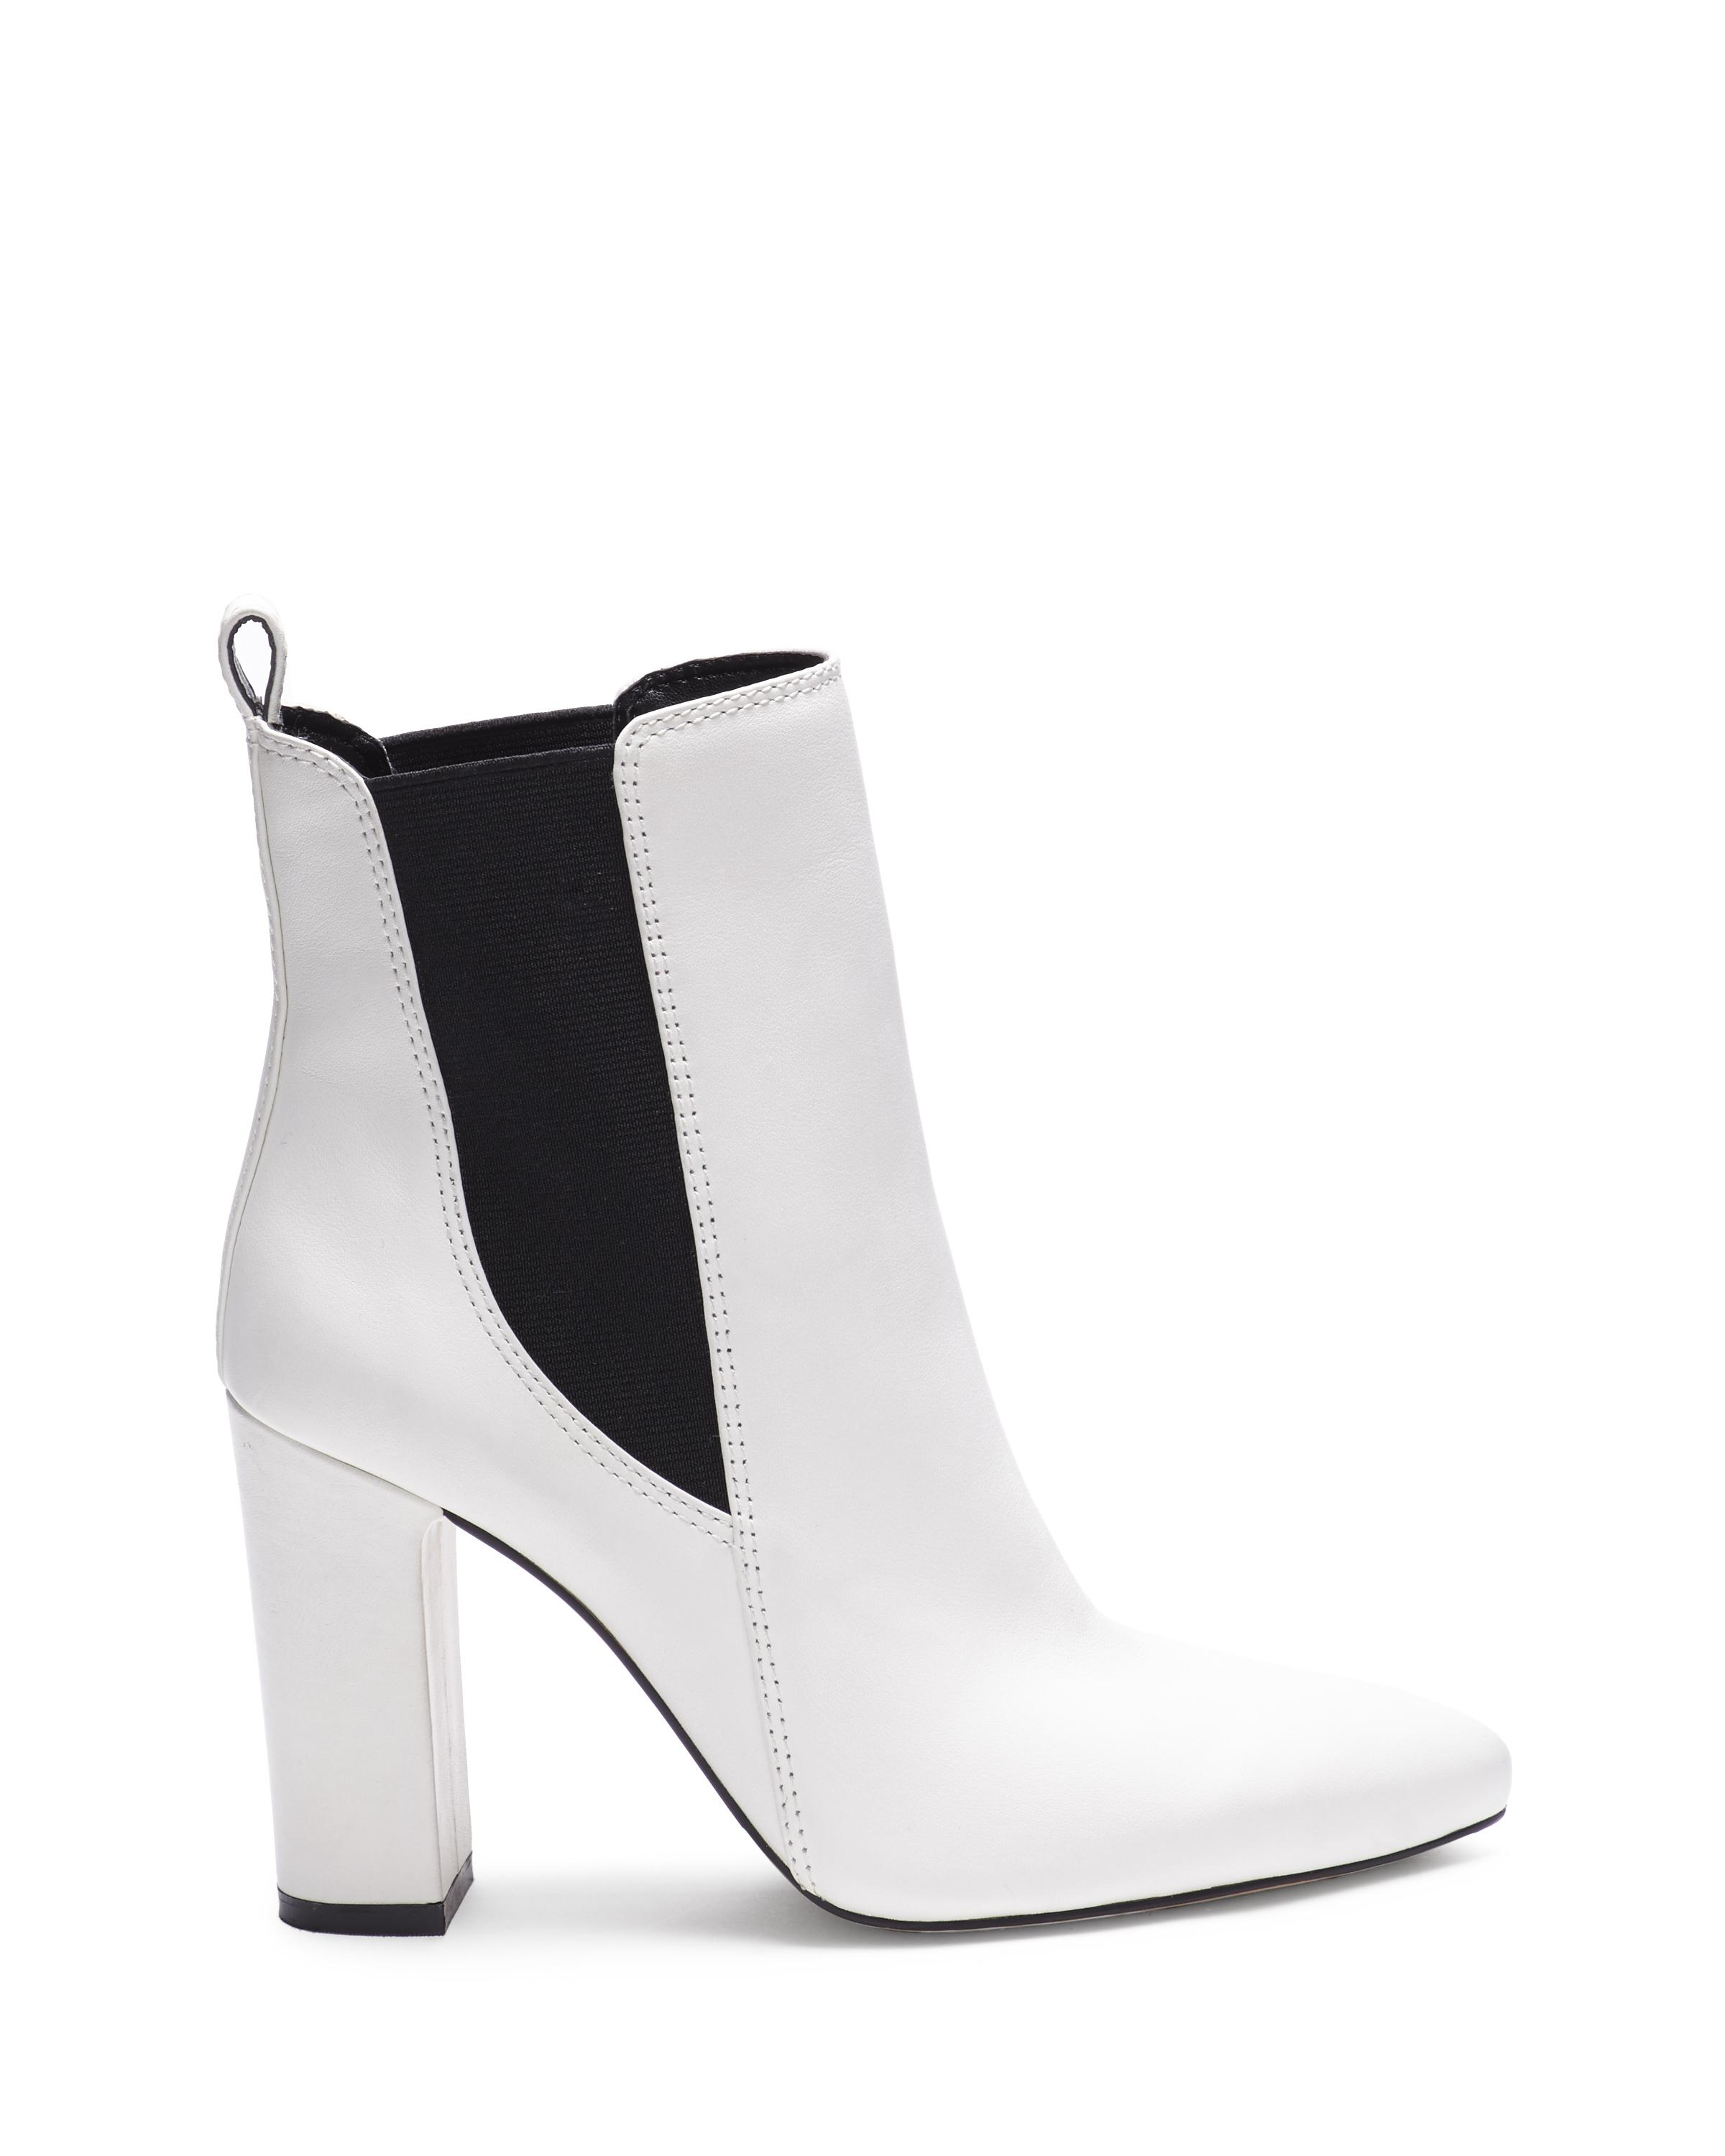 601f138d3655 Vince Camuto Britsy – Block-heel Bootie in White - Lyst